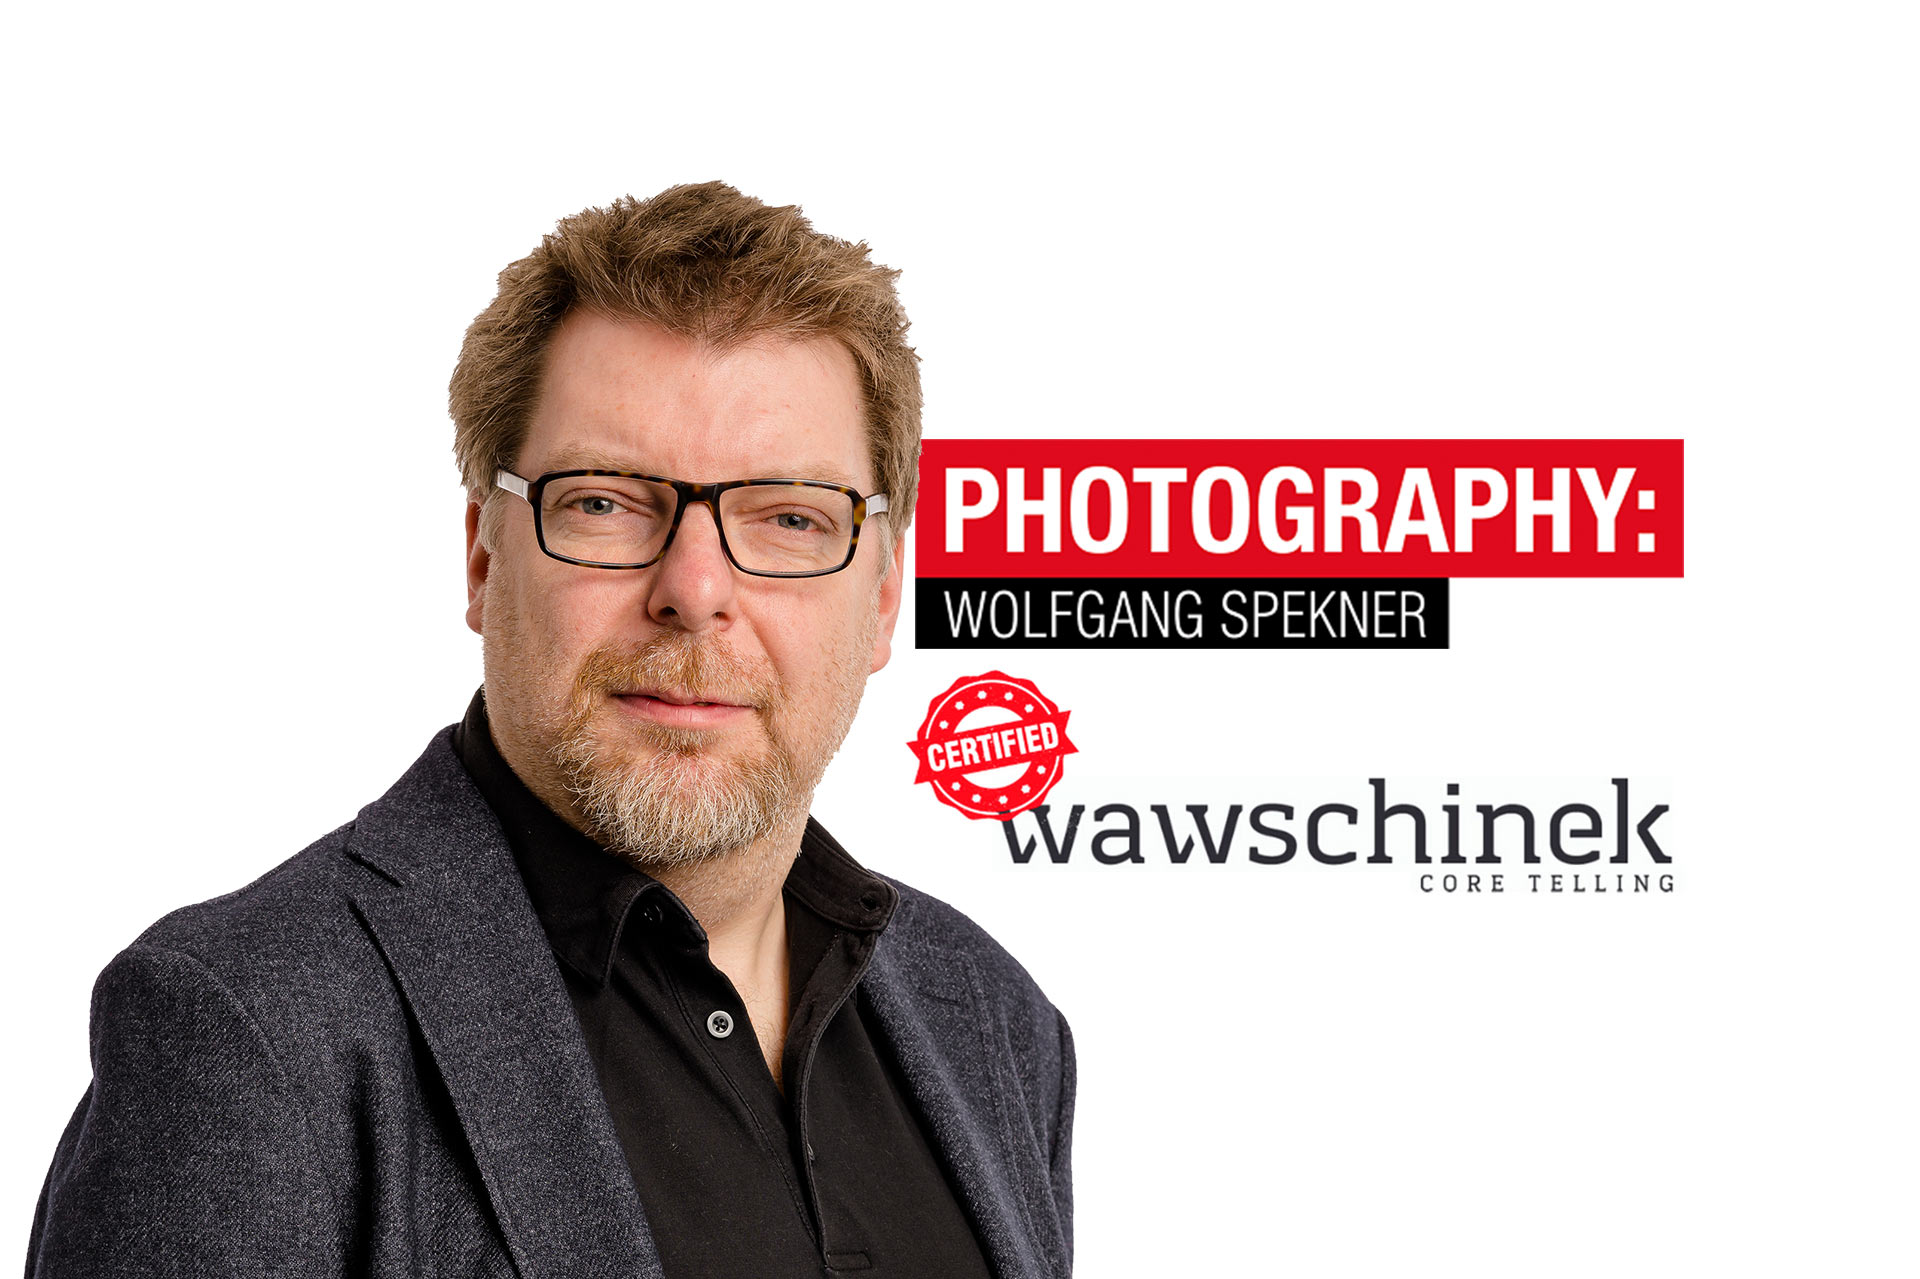 Georg Wawschinek: Coretelling Photography